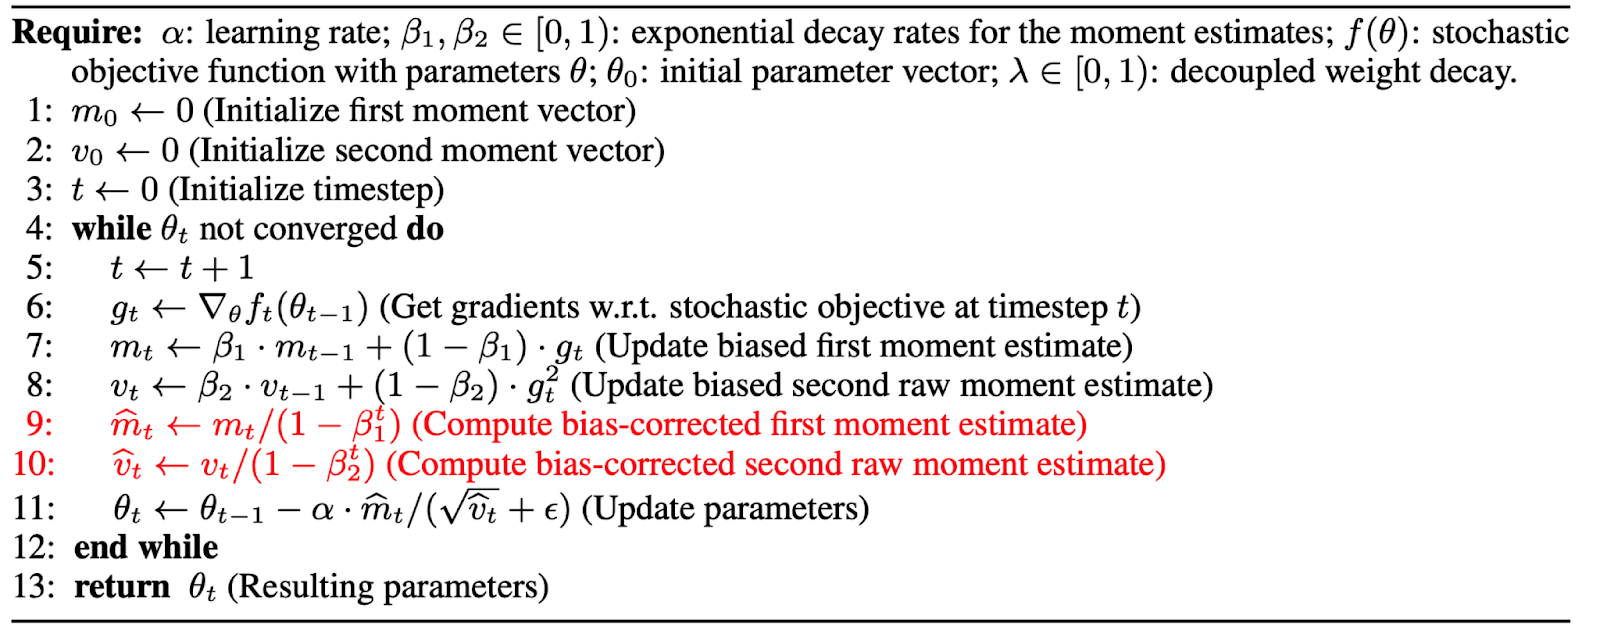 ASAPP - BERTAdam omits lines 9 and 10 which are used to correct the biases in the first and second moment estimates.